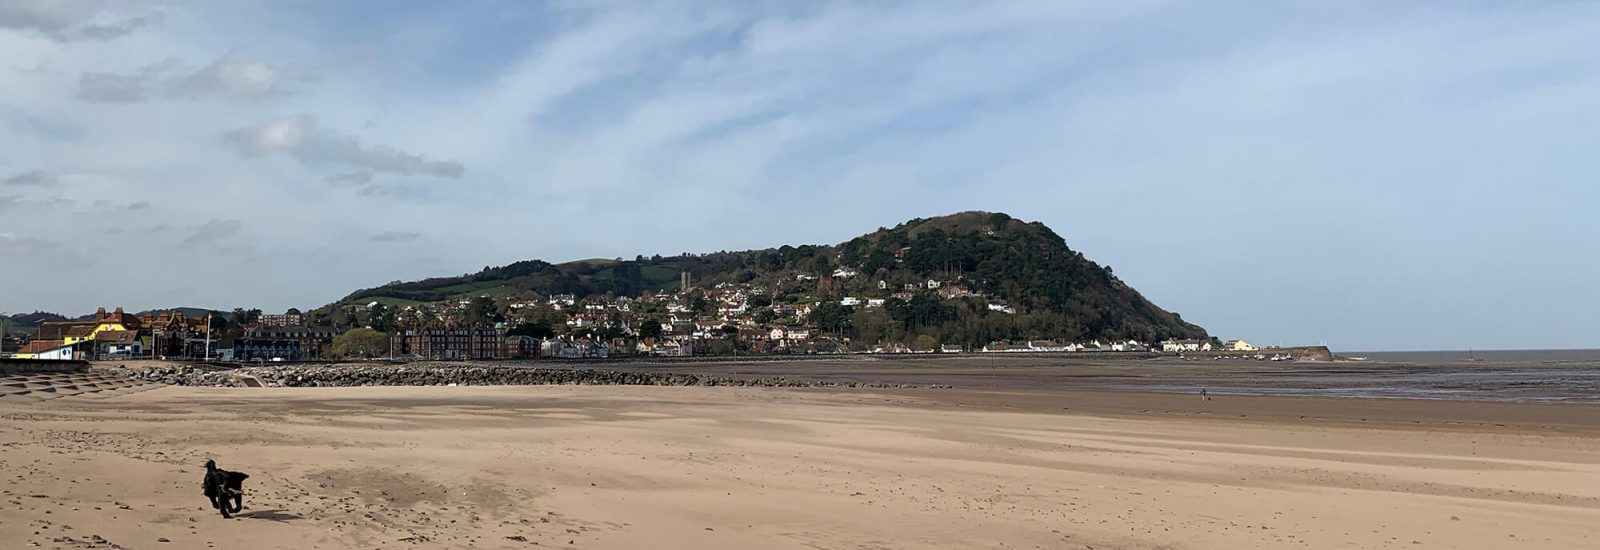 Image of Minehead Beach